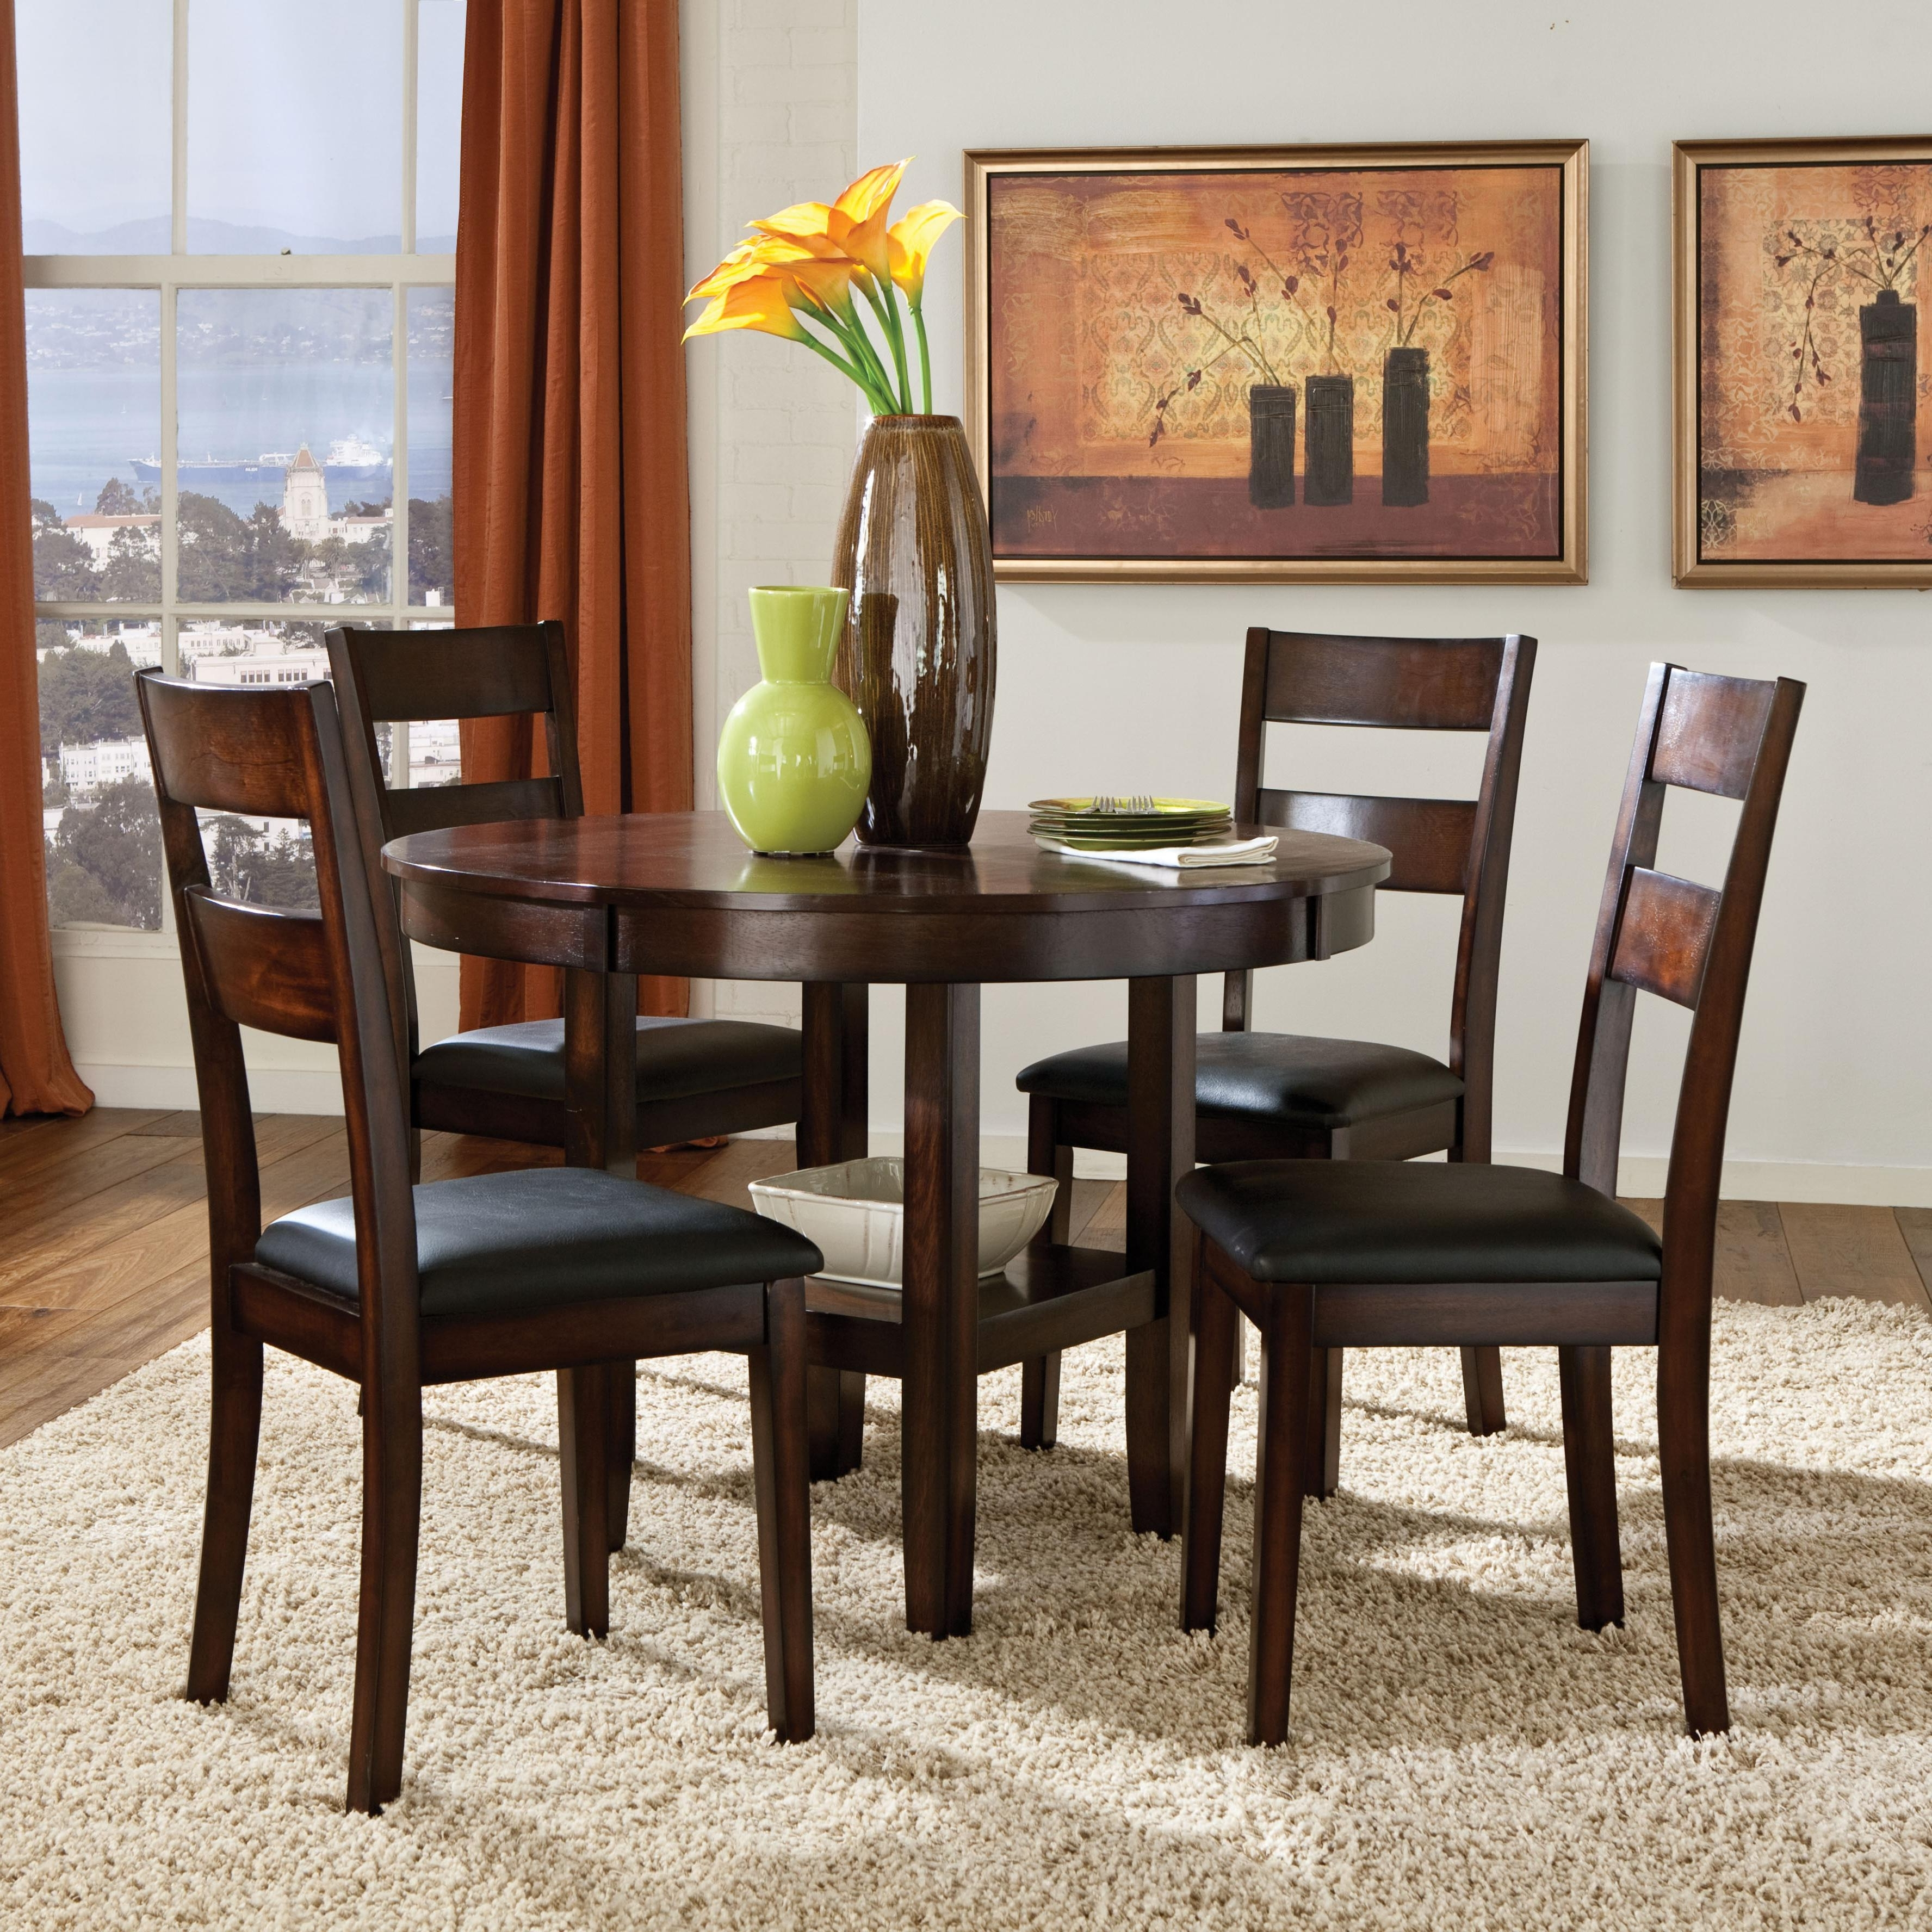 Preferred Macie 5 Piece Round Dining Sets Regarding 5 Piece Round Dining Table Set – Castrophotos (View 21 of 25)